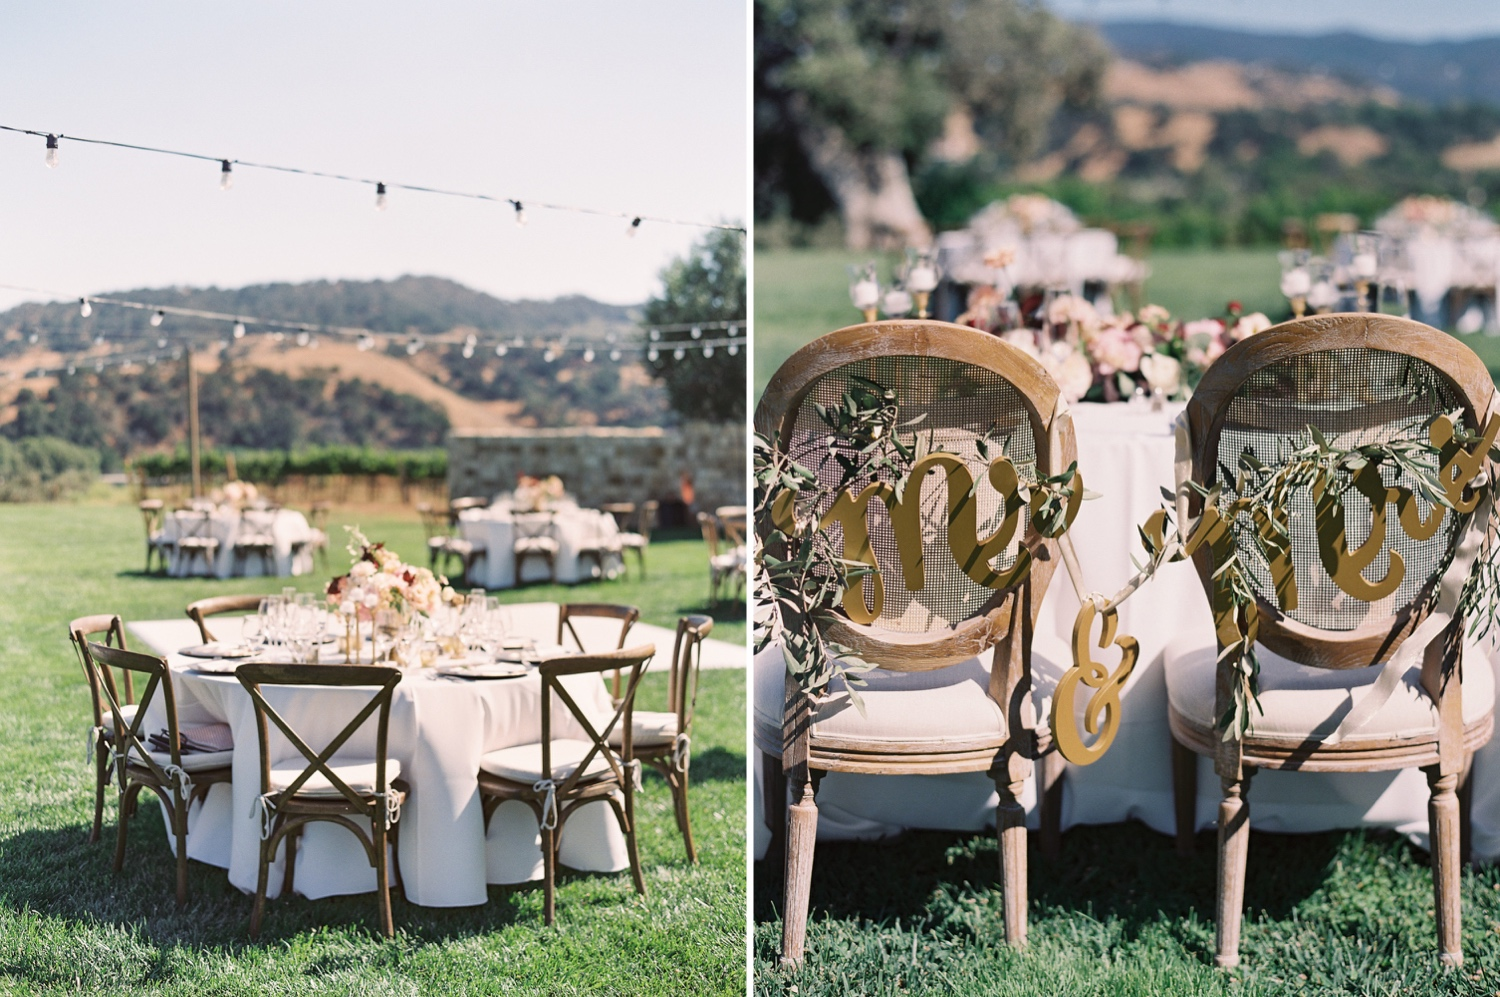 Rustic and modern outdoor wedding tabletops and decor at winery